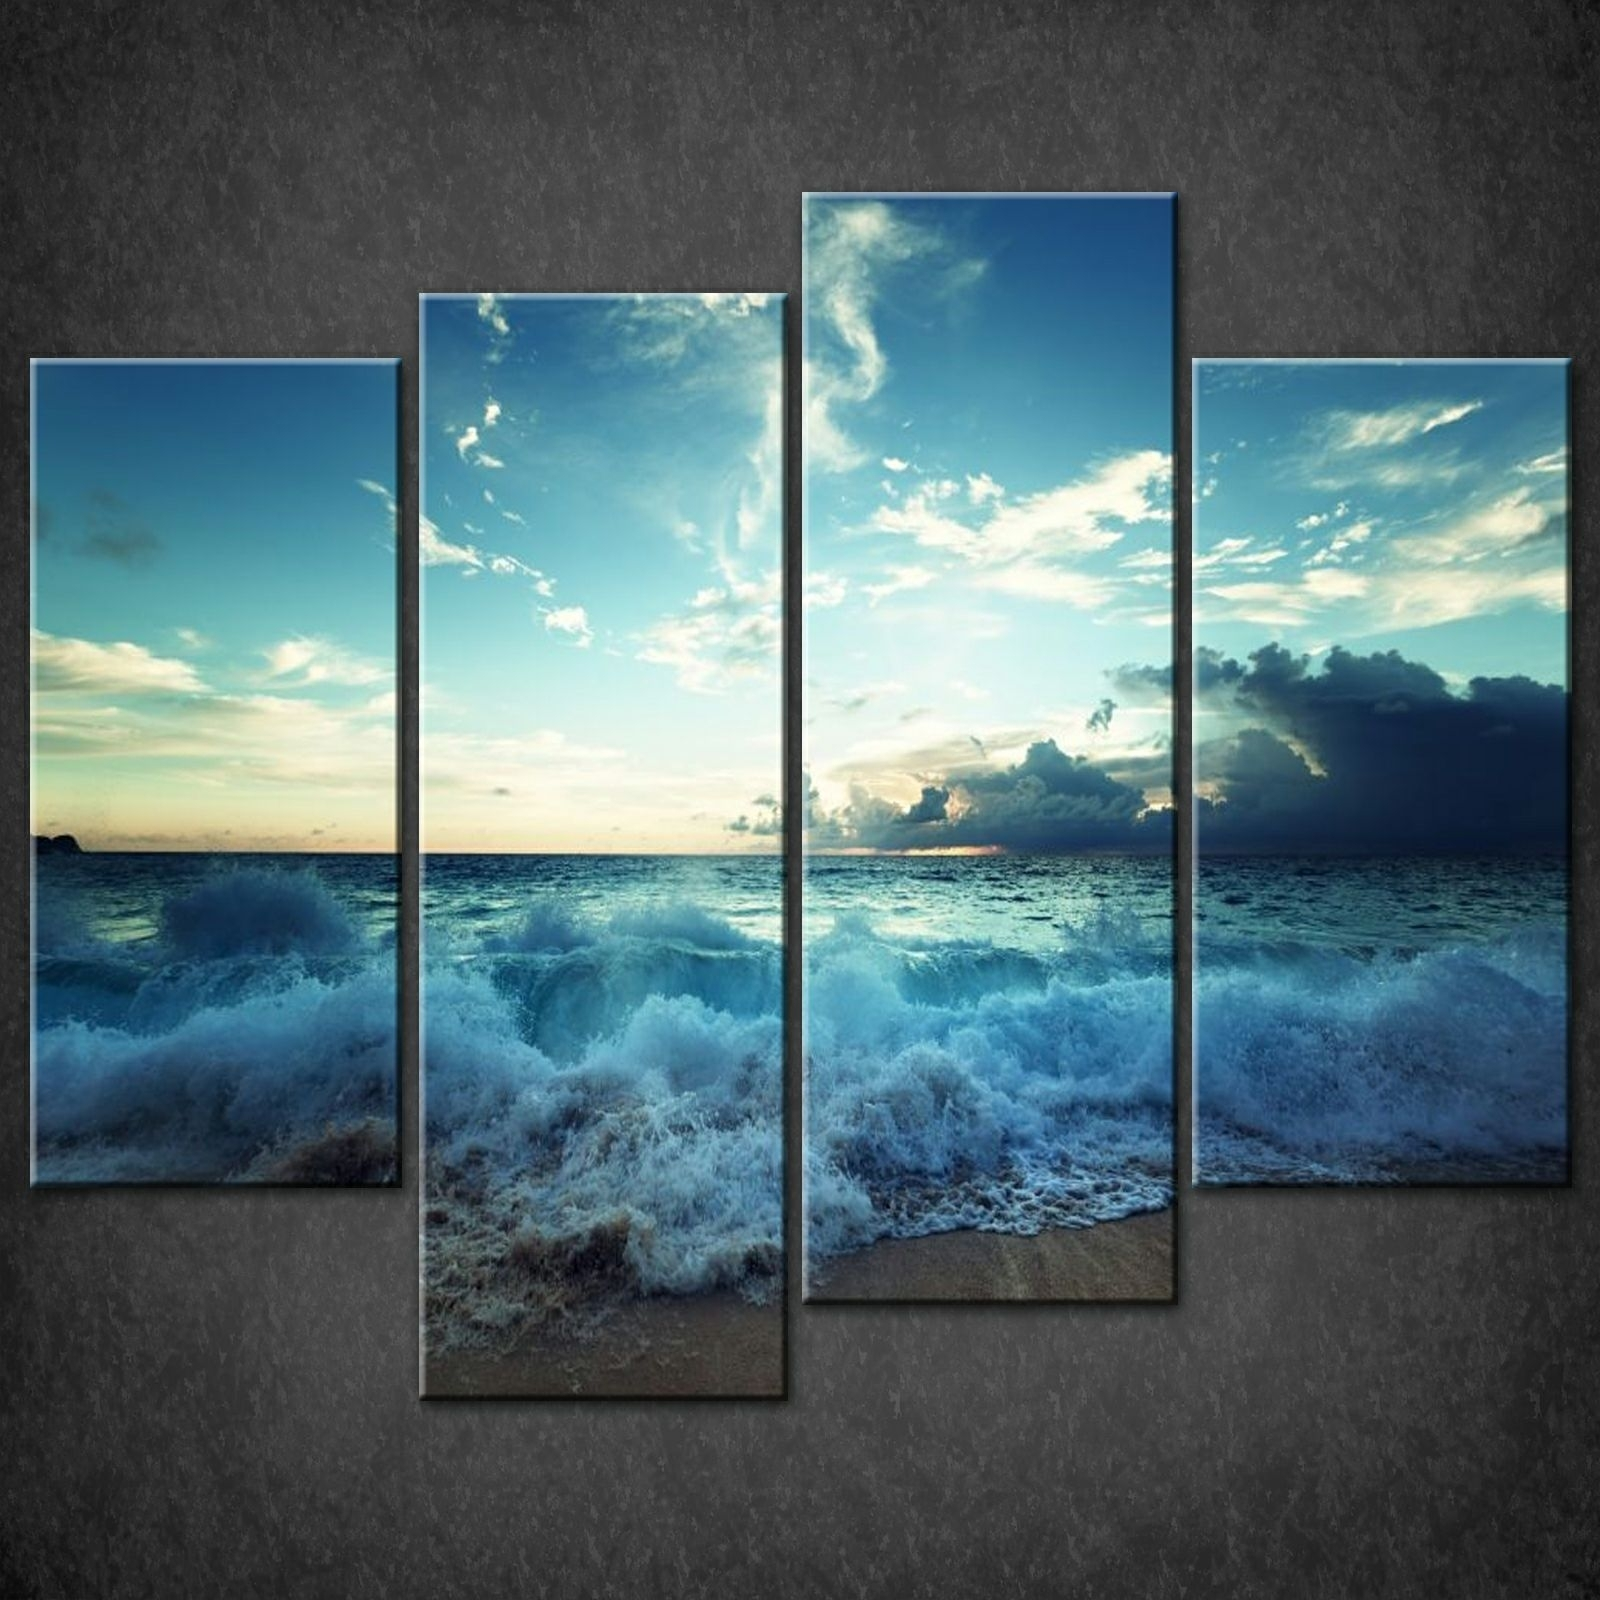 Large Teal Seascape Sunset Canvas Pictures Wall Art Split Multi 4 Within Latest Duck Egg Blue Canvas Wall Art (Gallery 8 of 15)